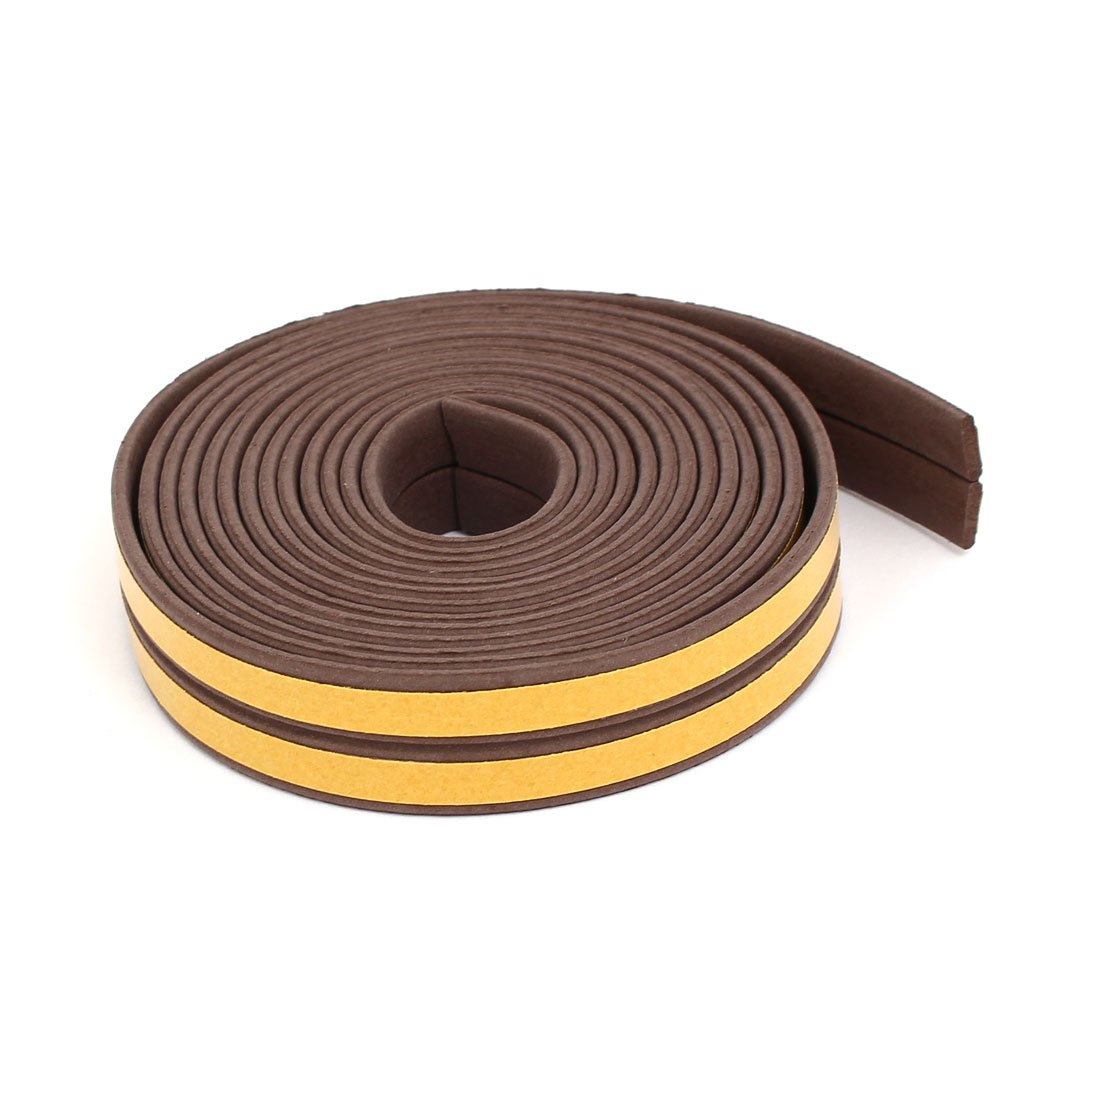 Sourcingmap 2.5M 8.2 Feet EPDM Foam Rubber Self Adhesive Weatherstrip Seal Strip Brown 2pcs